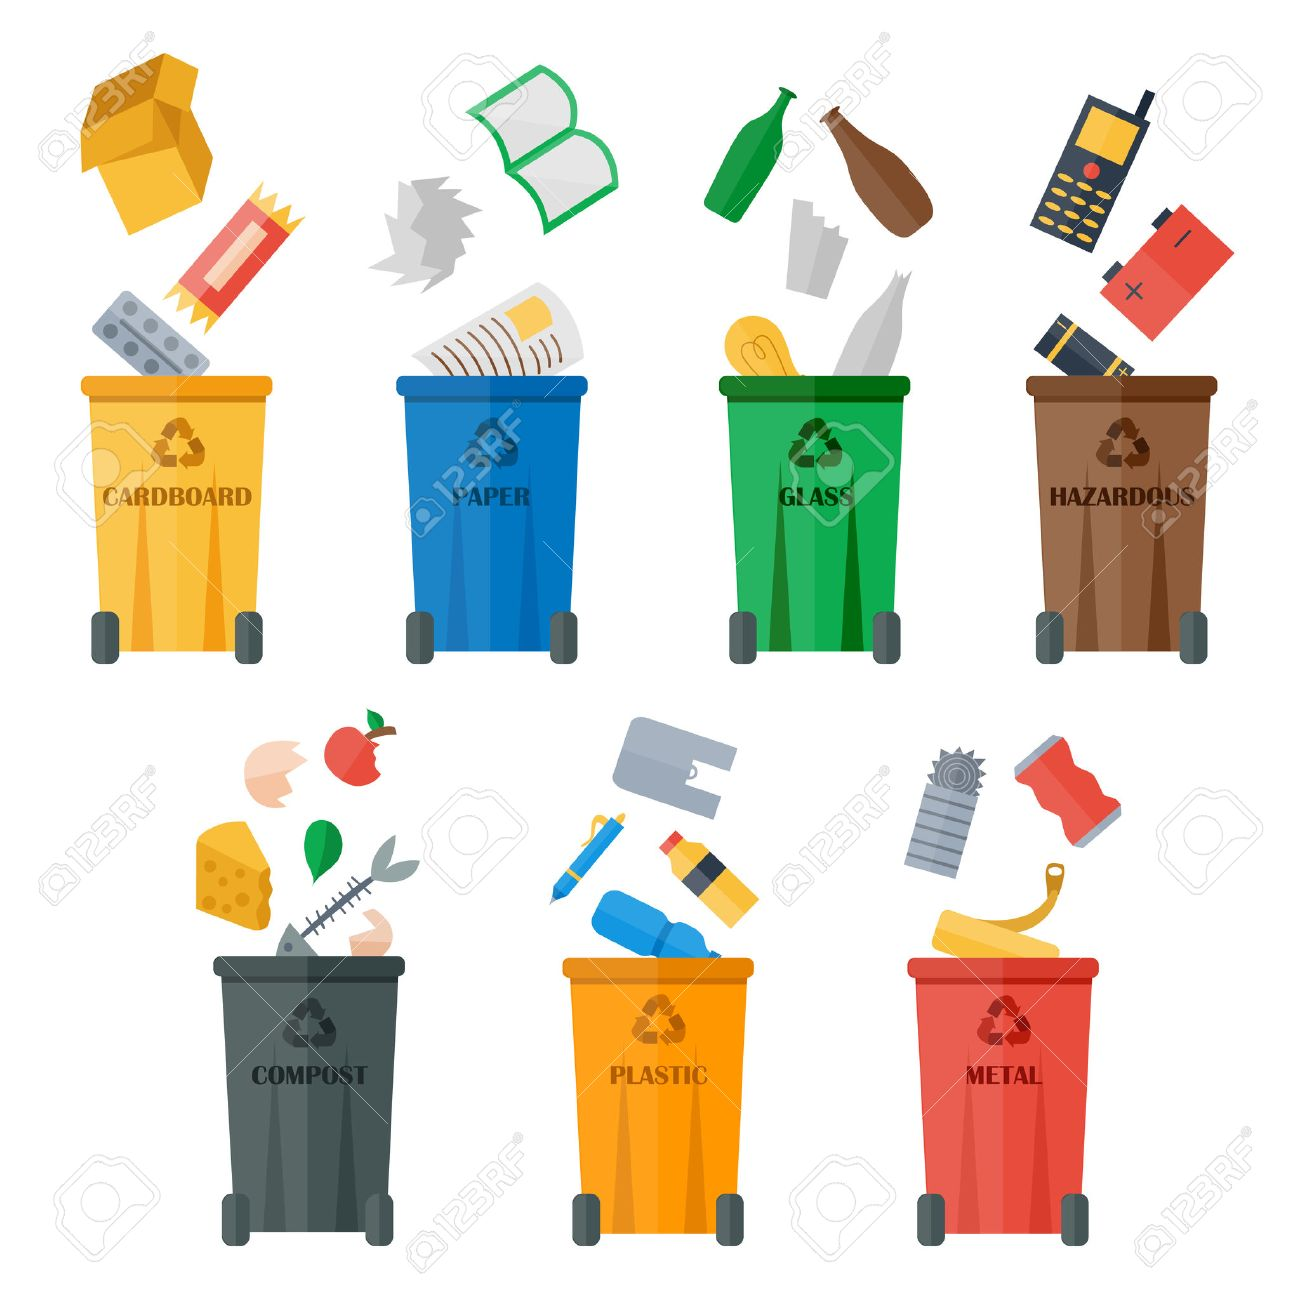 Clipart Waste Management 20 Free Cliparts